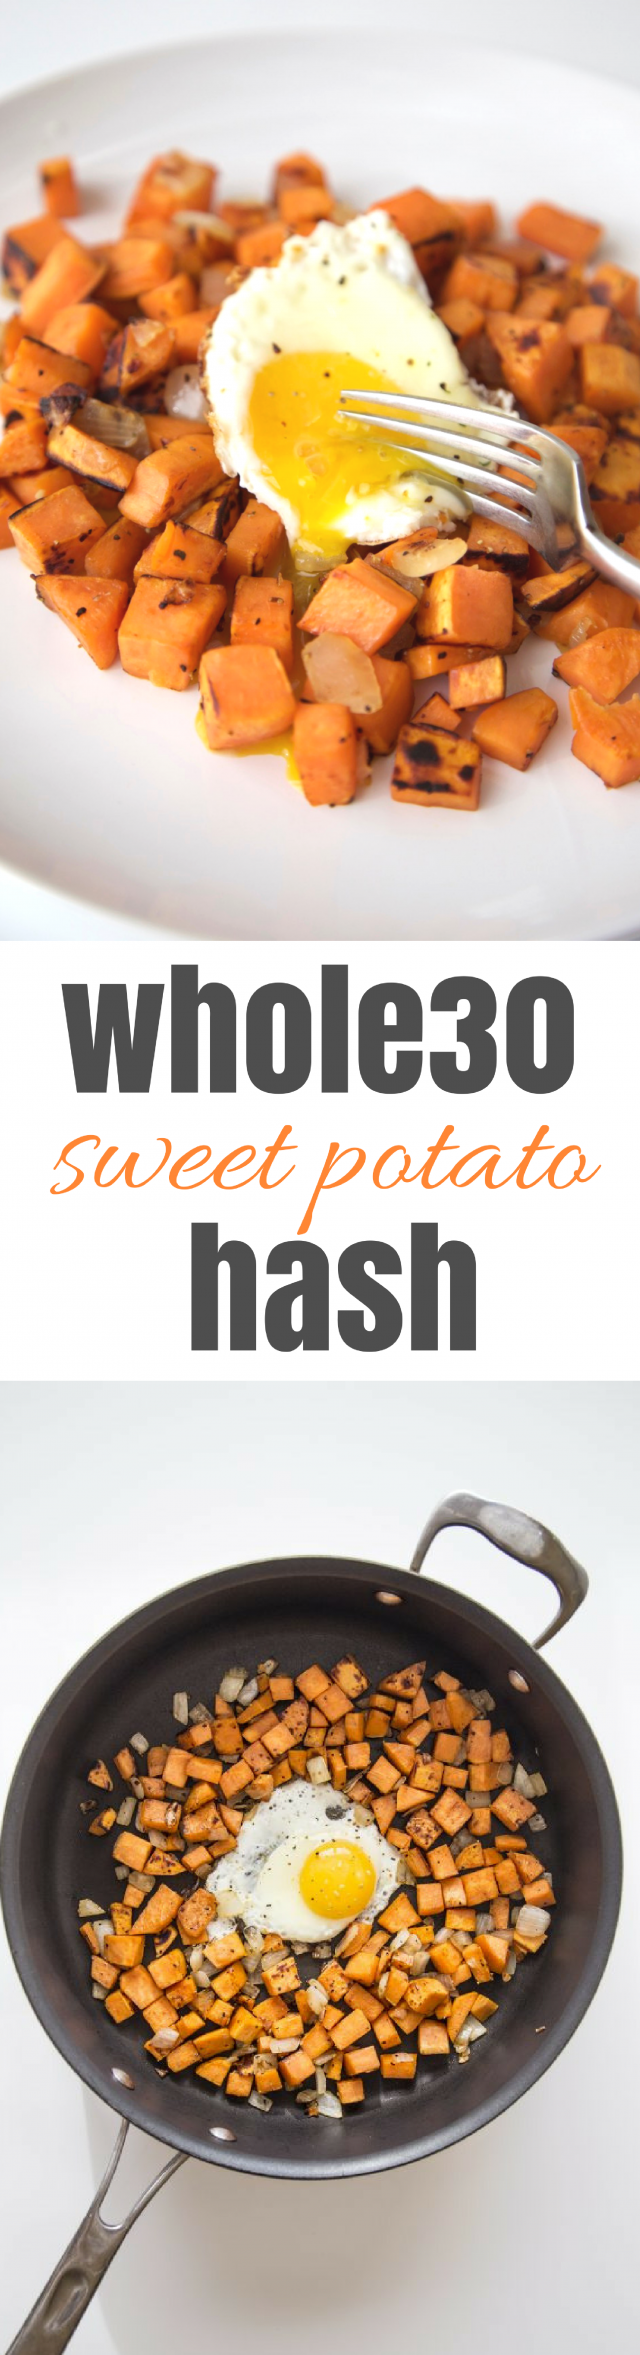 Whole30 Whole 30 Sweet Potato Hash with Fried Egg